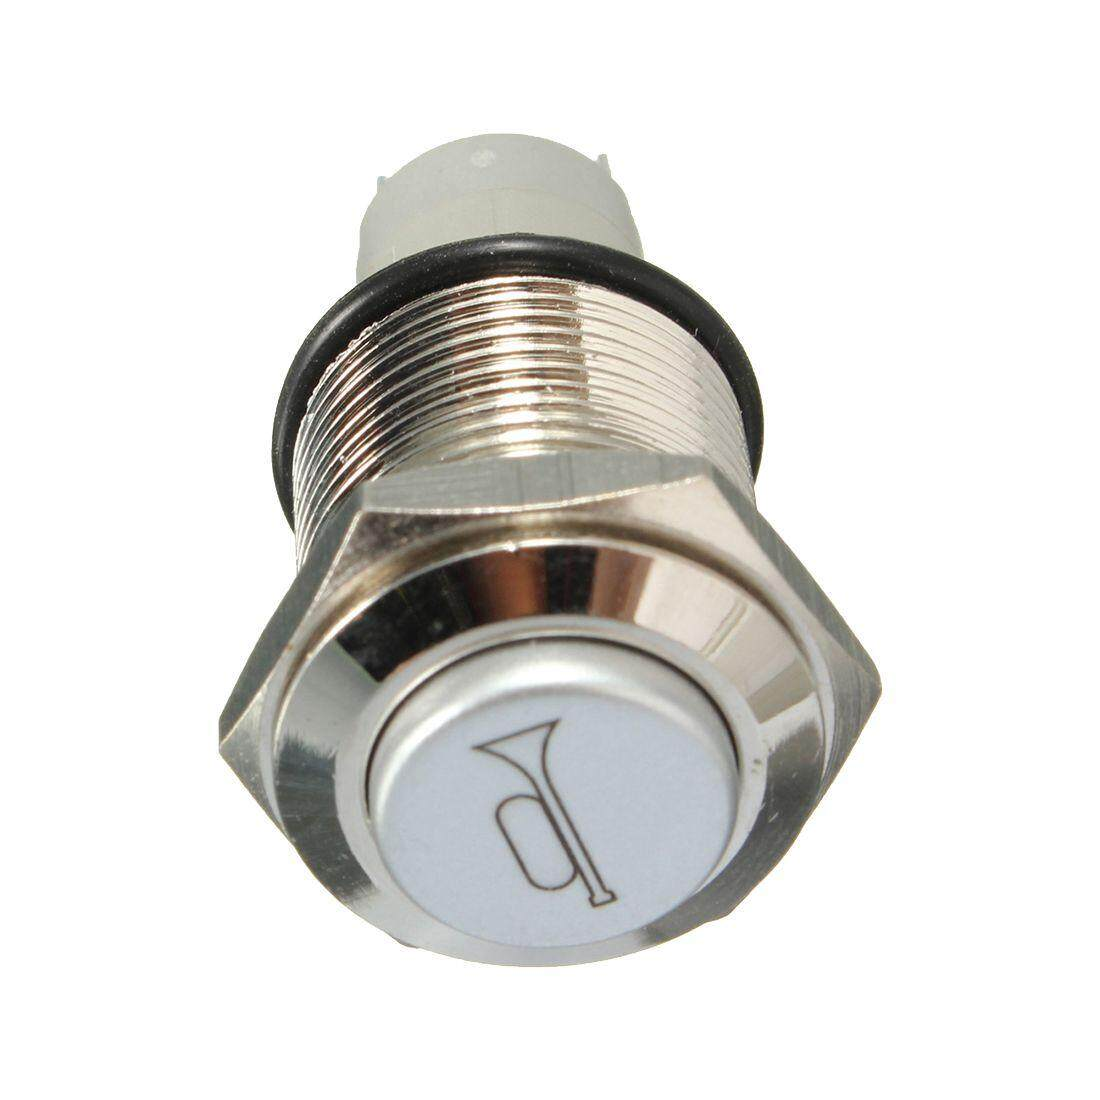 Features 12v Dc Led Light Illuminated Green Round Momentary Push Rocker Switch Spst X2 With Red Indicator Lamps 16mm Car Horn Button Metal